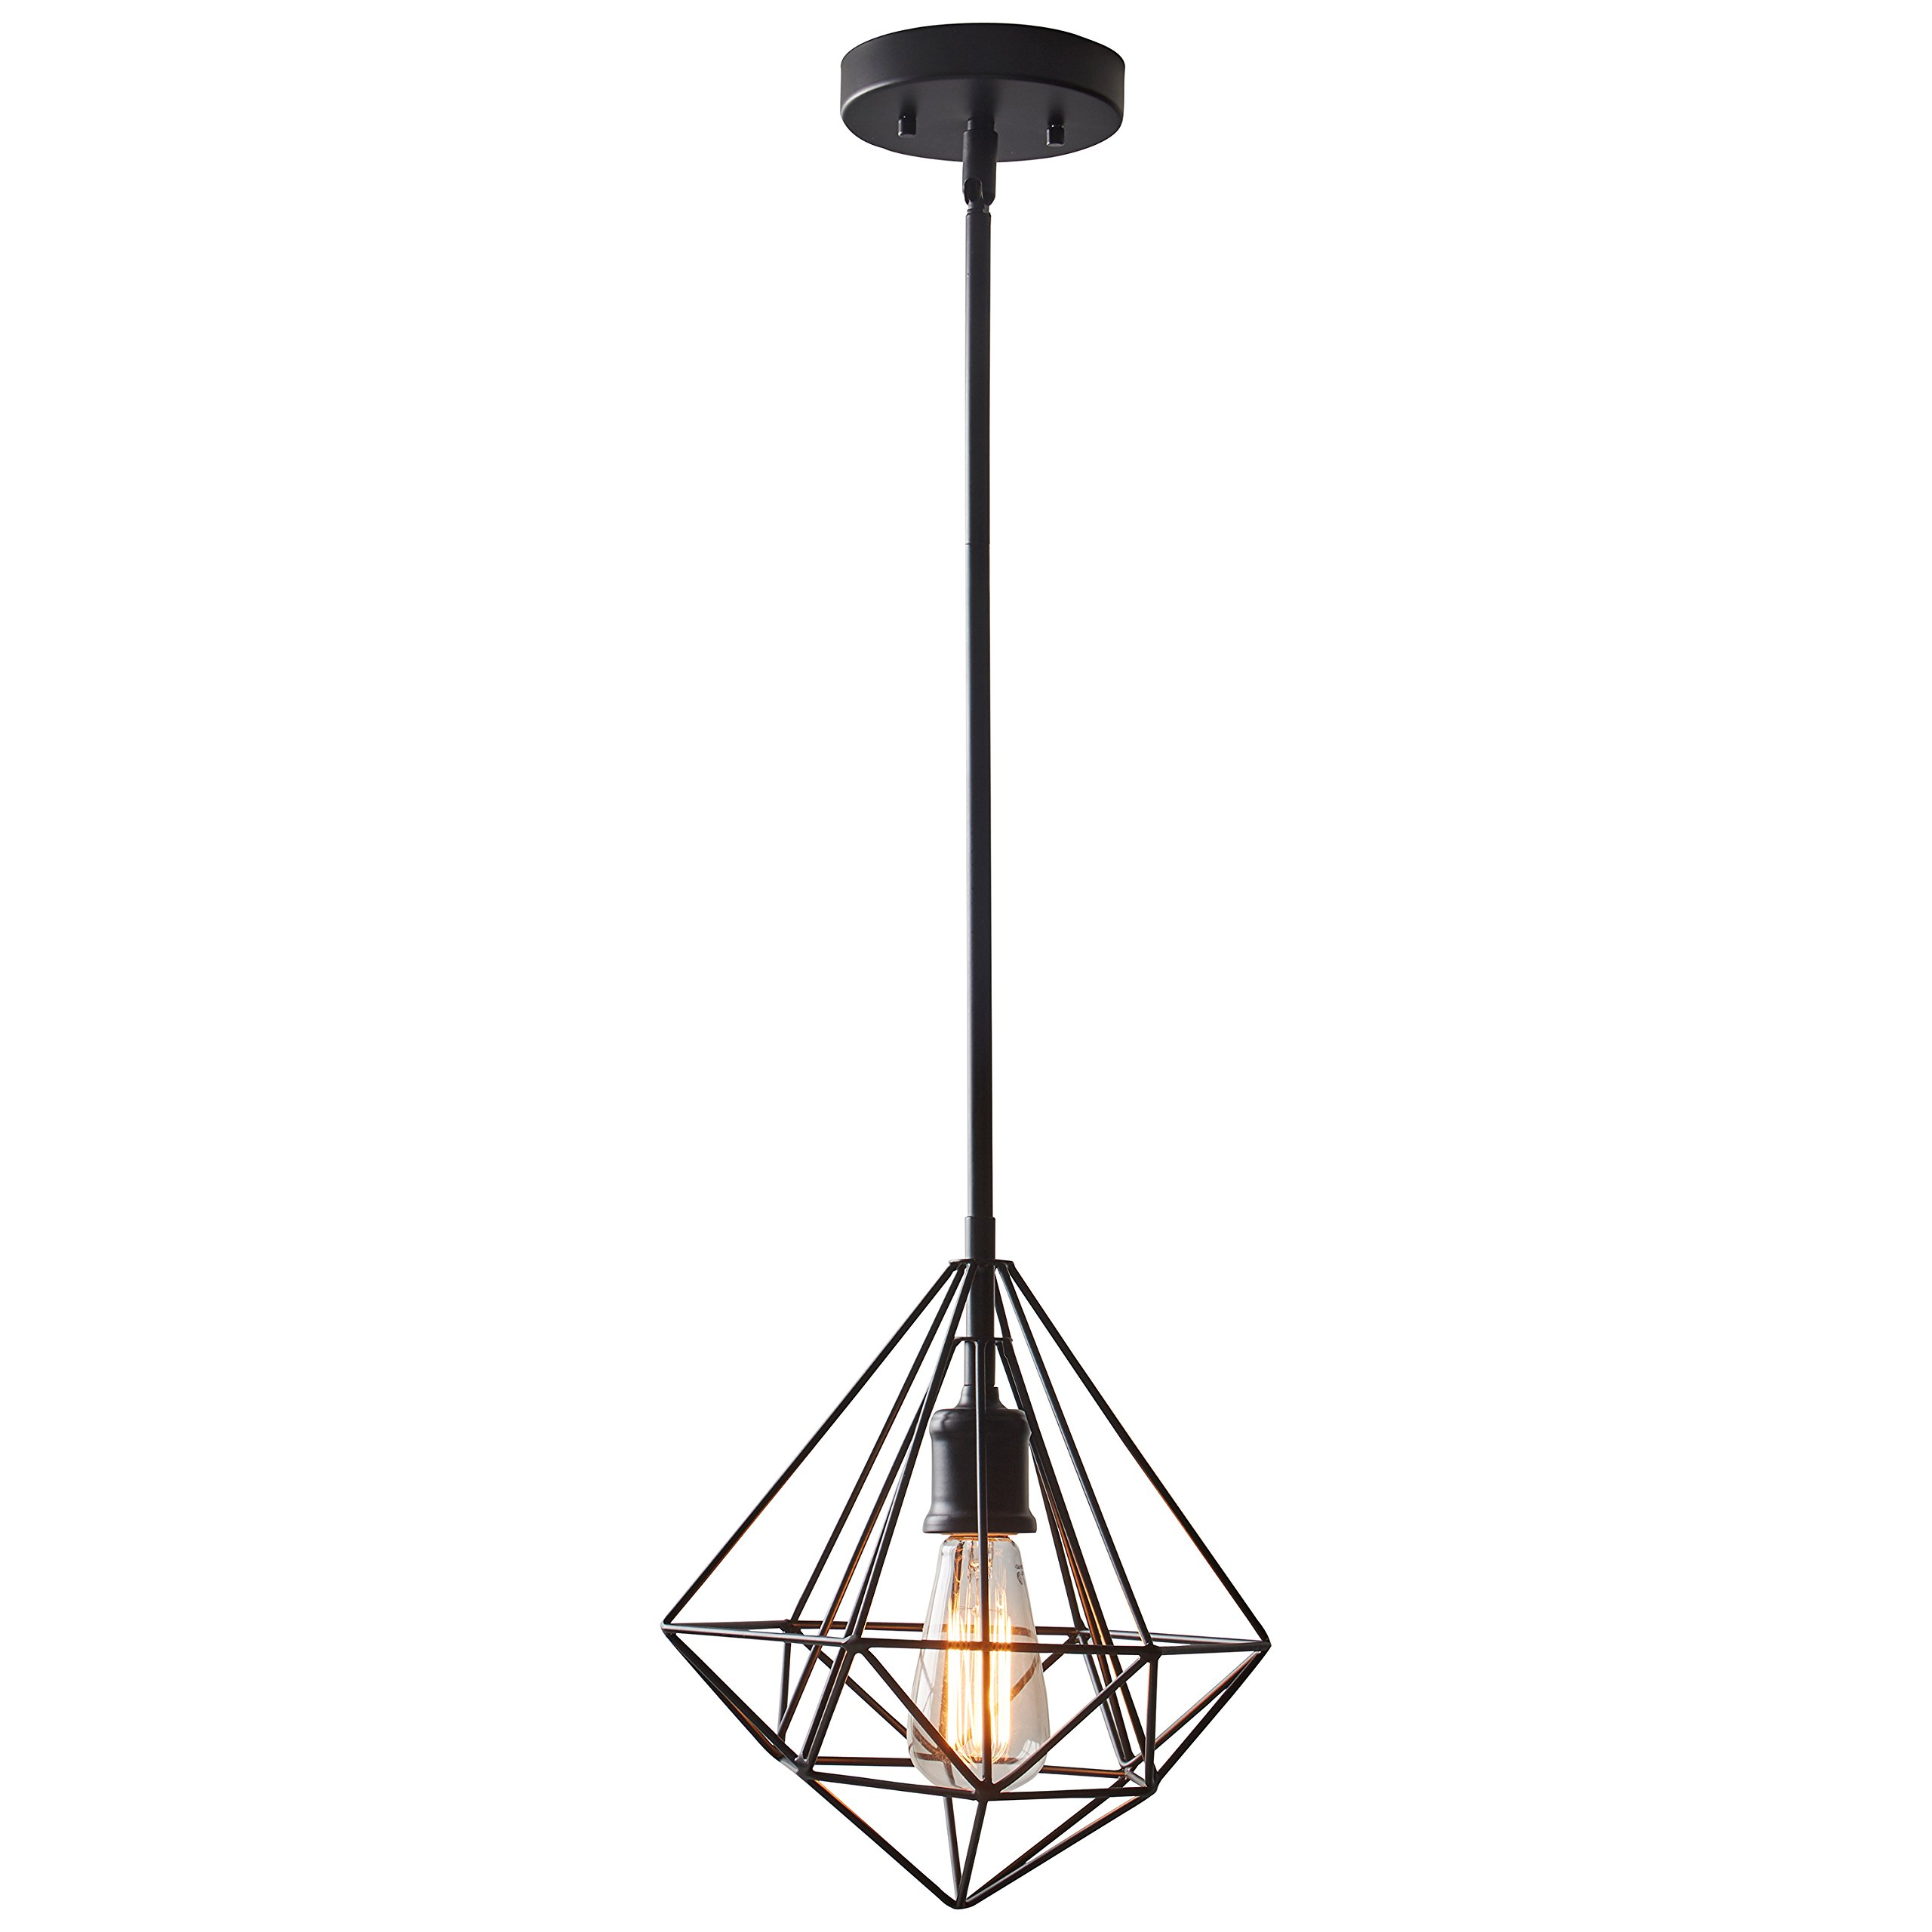 Rivet Industrial Geometric Cage Light With Bulb, 14.75''-62.75'' H, Black